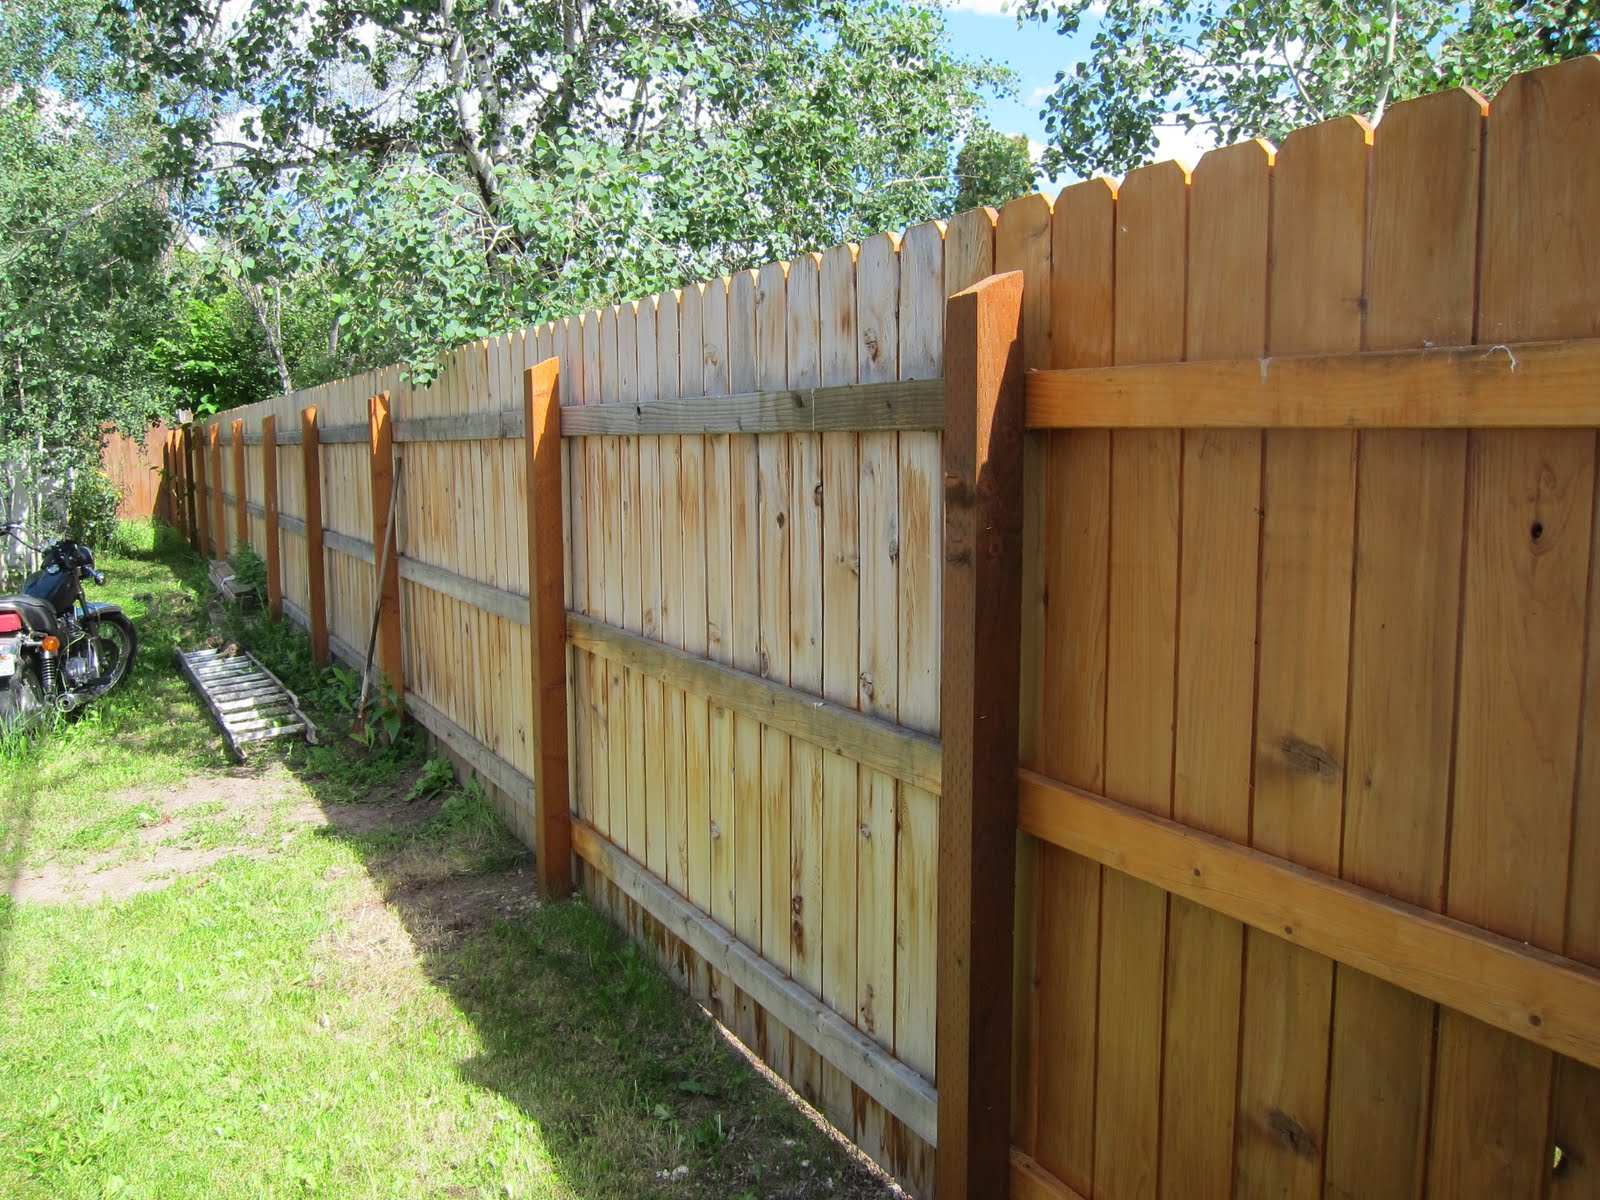 Popular Fence Stain Cole Papers Design Use The Fence Stain Ideas intended for size 1600 X 1200